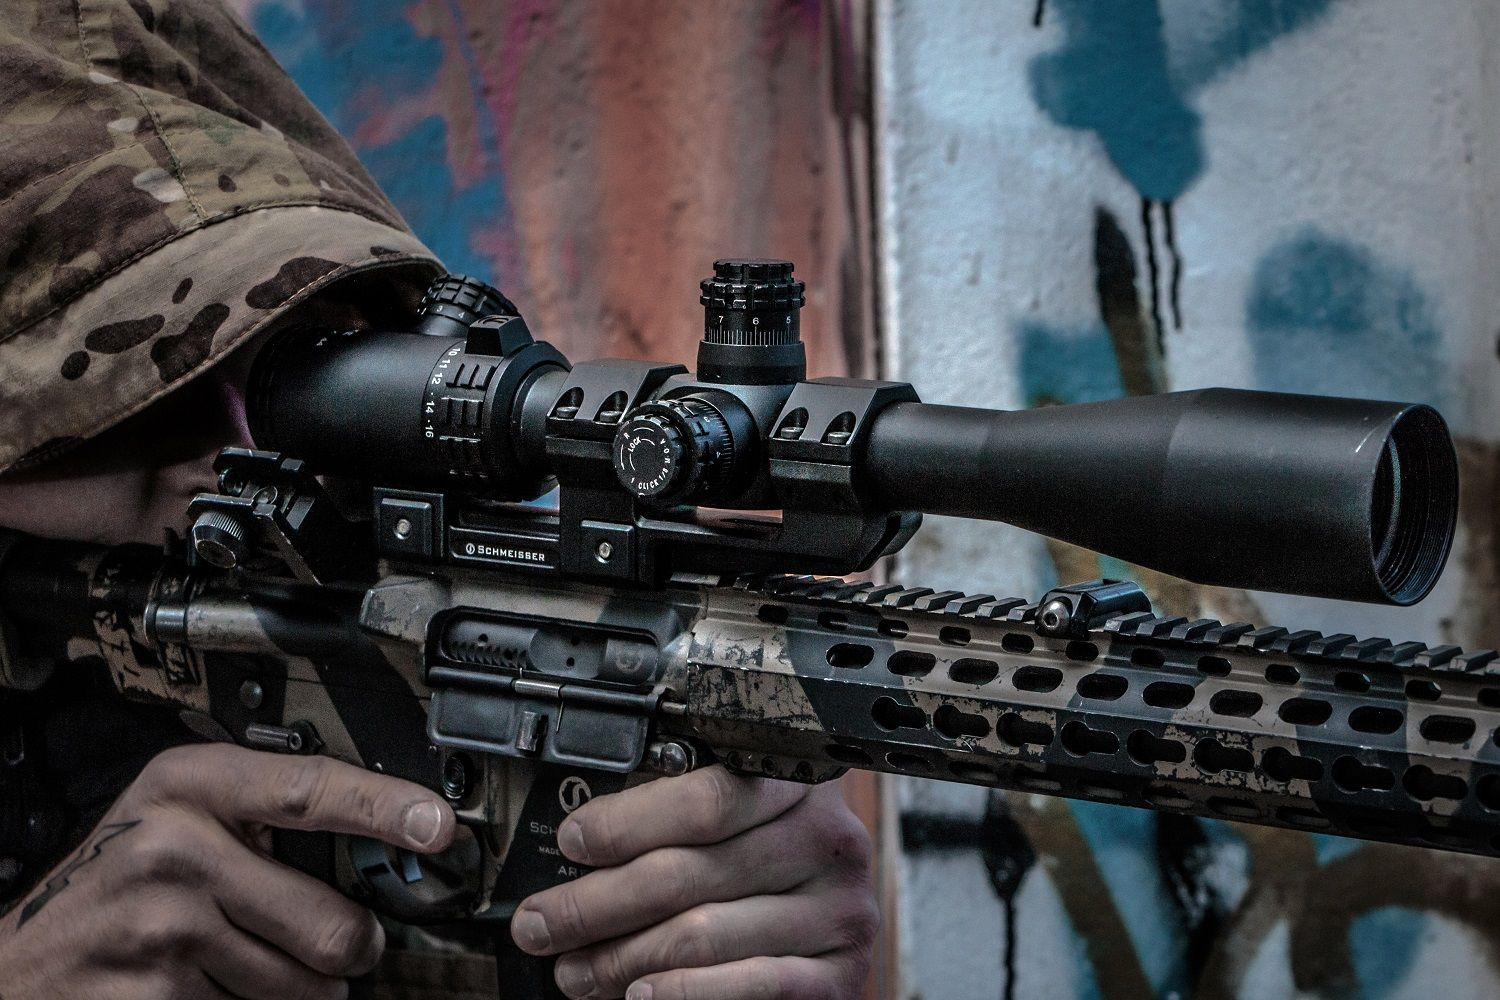 Ideal for everyone who shoots freehand at lower magnification levels but wants to be able to shoot accurately at long ranges as well, the Falke TAC Series 4-16x44 is suitable for all magnum calibres, but its magnification and parallax compensation also make it popular for .22 LR rifles. (Photo: Falke)